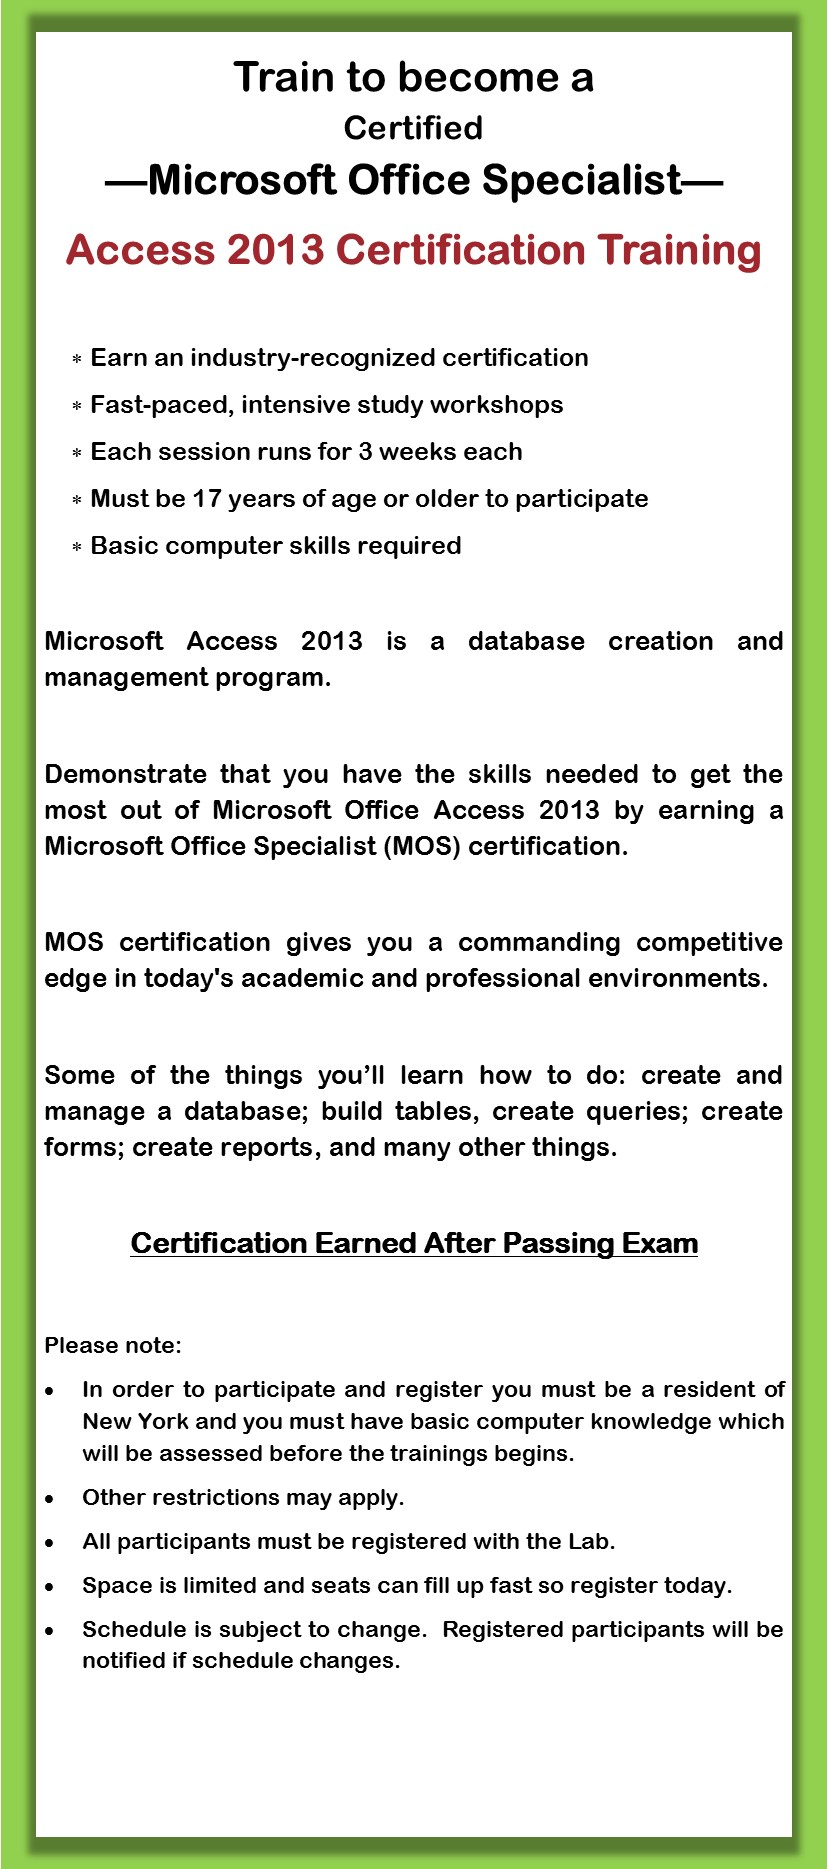 Microsoft Access Training 2013 Summer Institute July 23 August